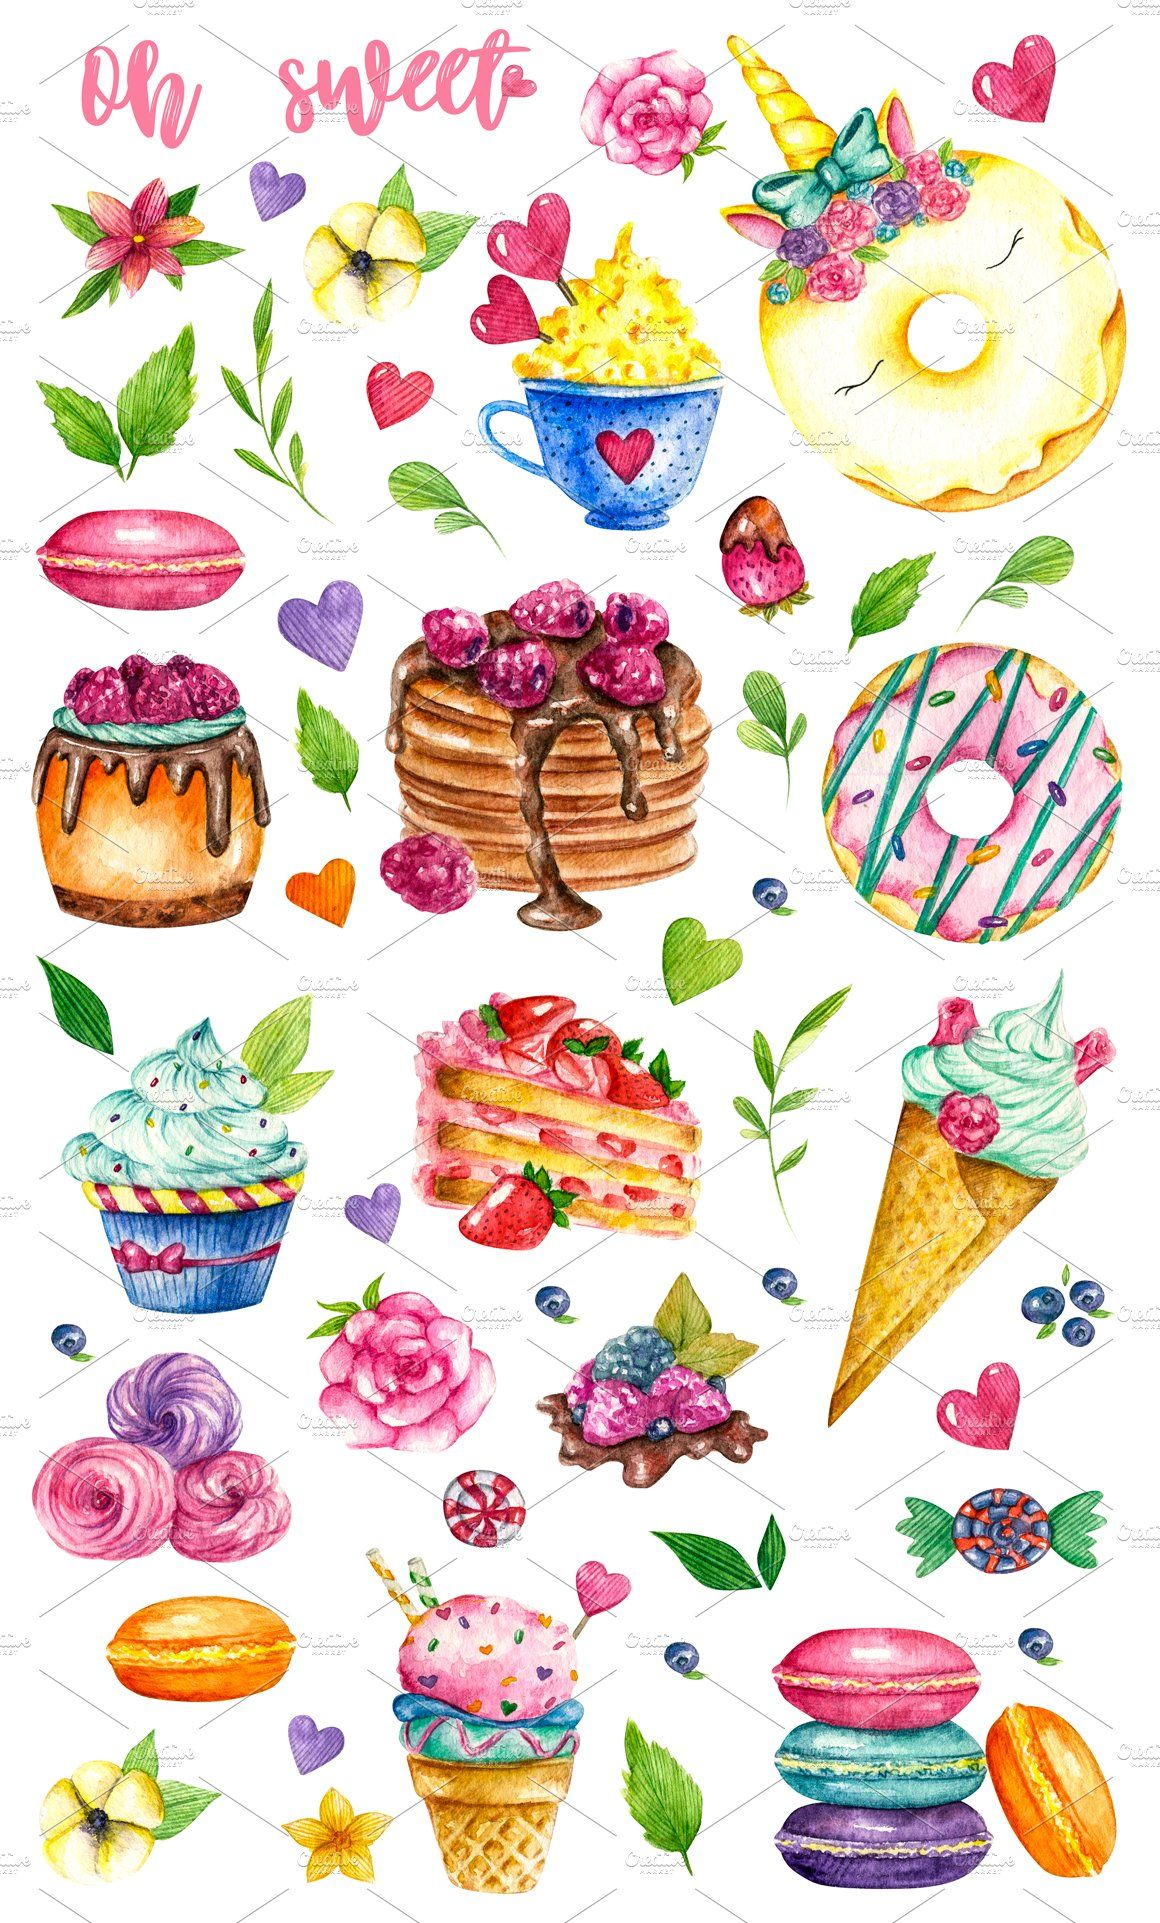 Sweets Desserts Watercolor Clipart Watercolor Clipart Watercolor Illustration Postcard Printing